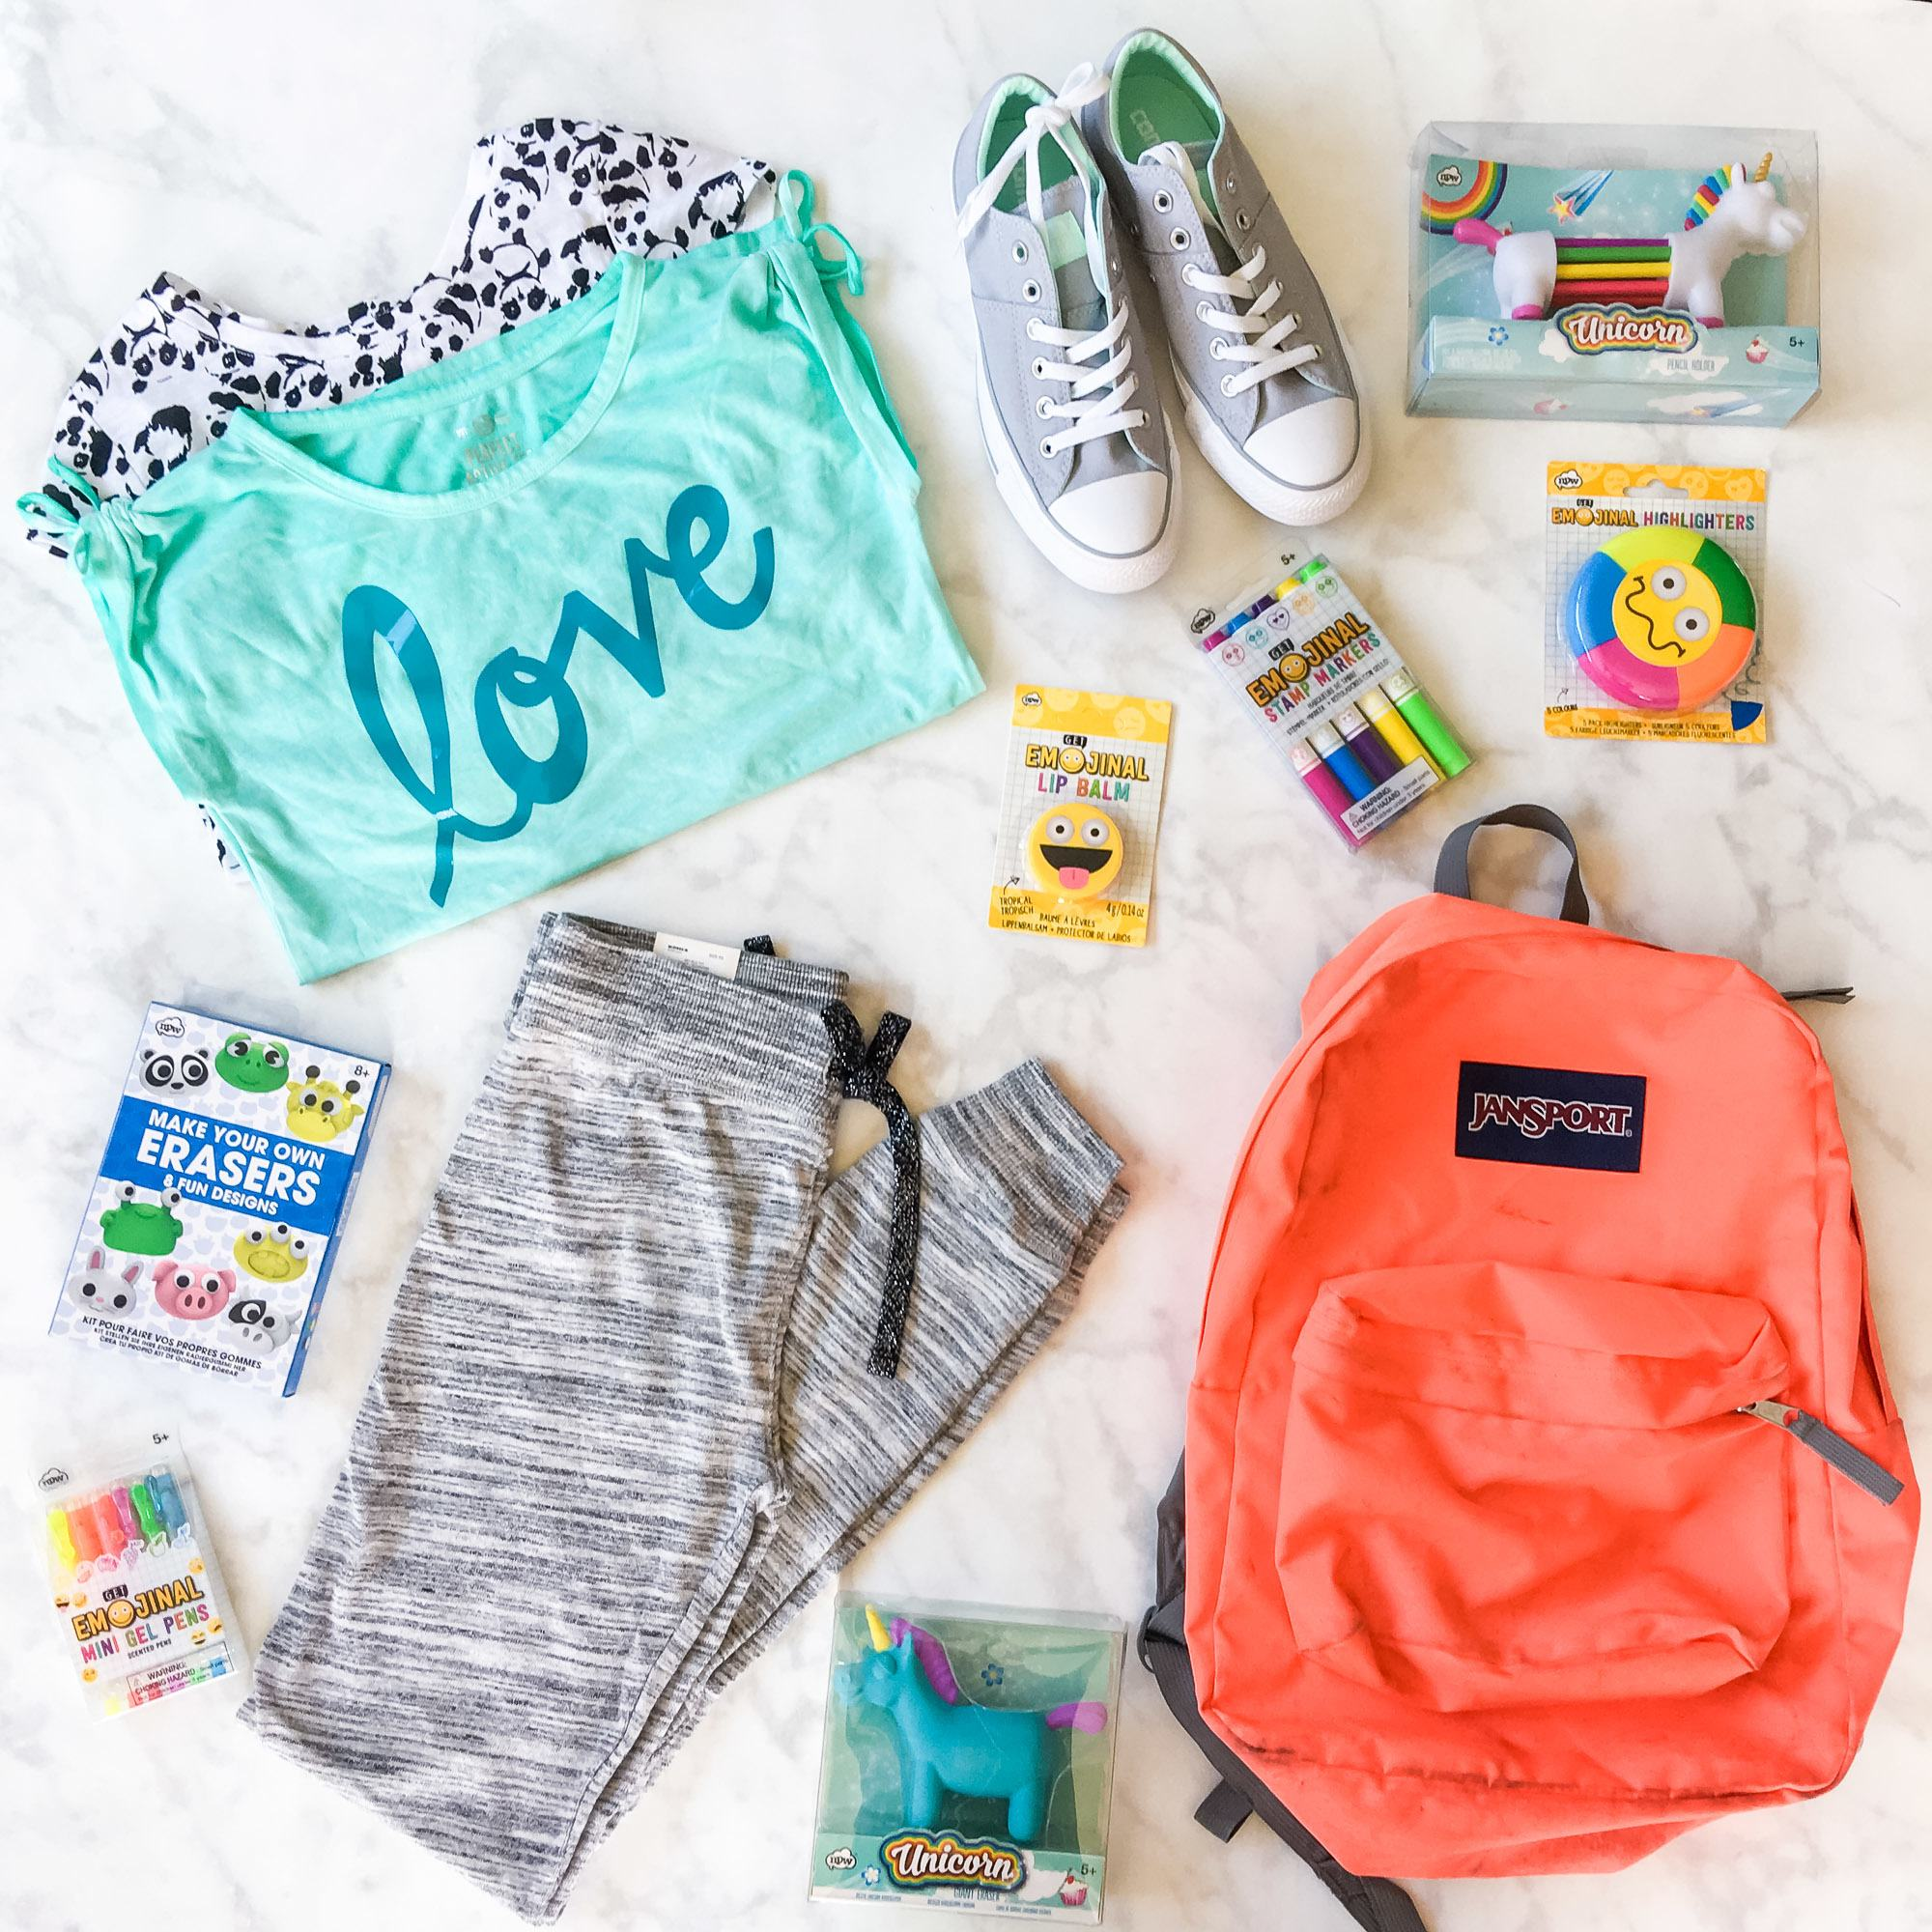 A tween's back-to-school shopping haul from Kohl's.